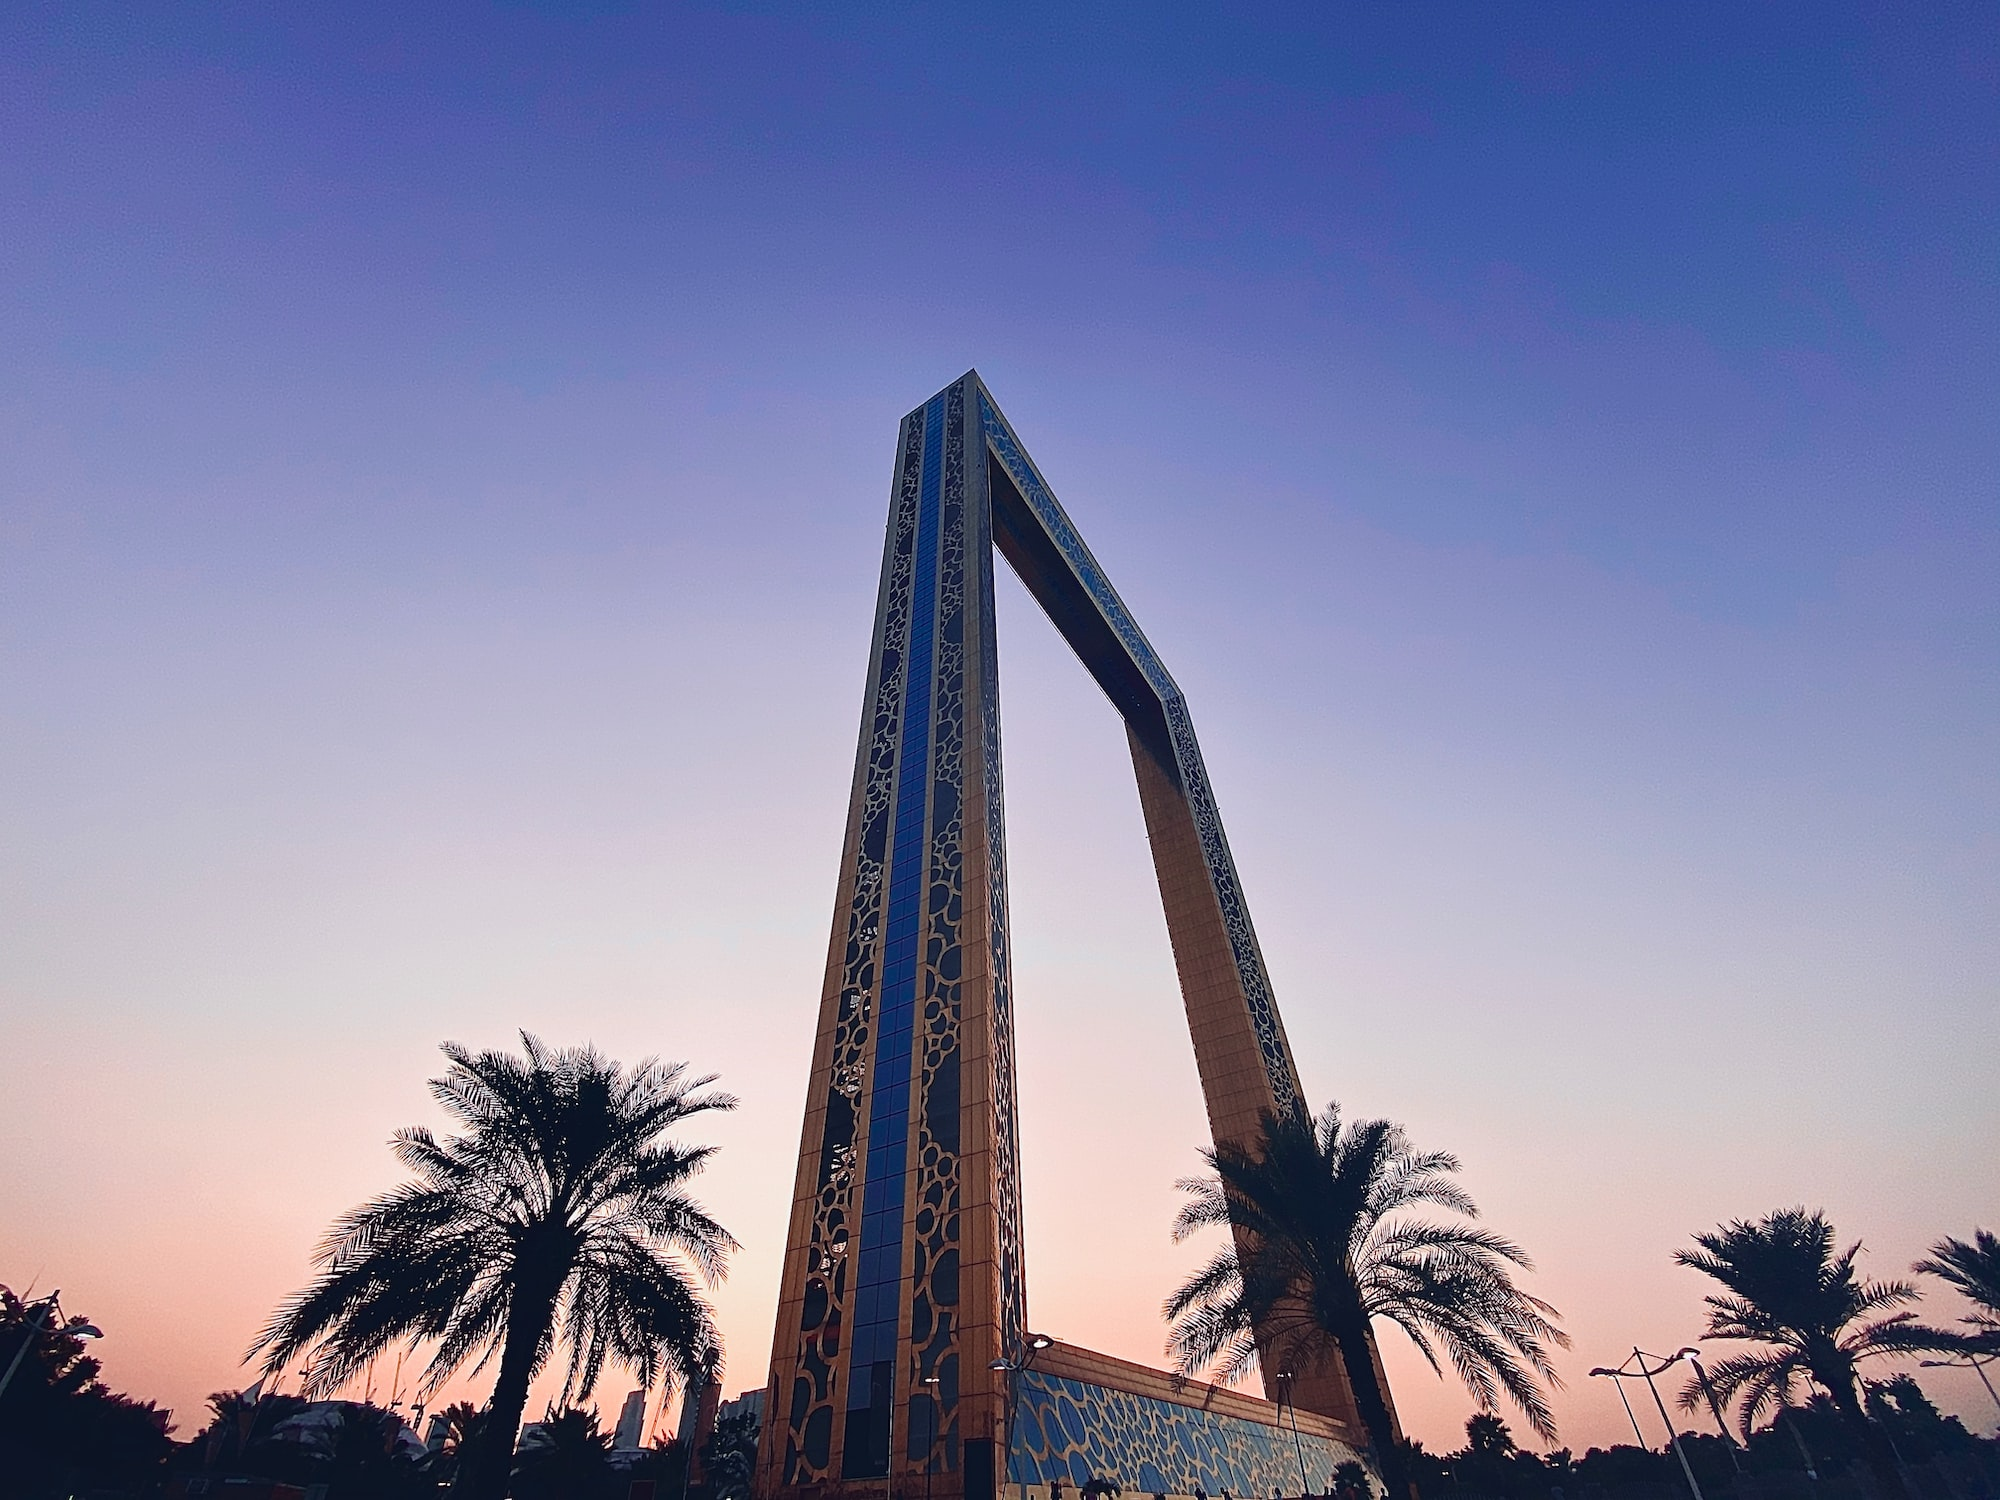 Dubai Frame by the sunset, shot on iPhone.